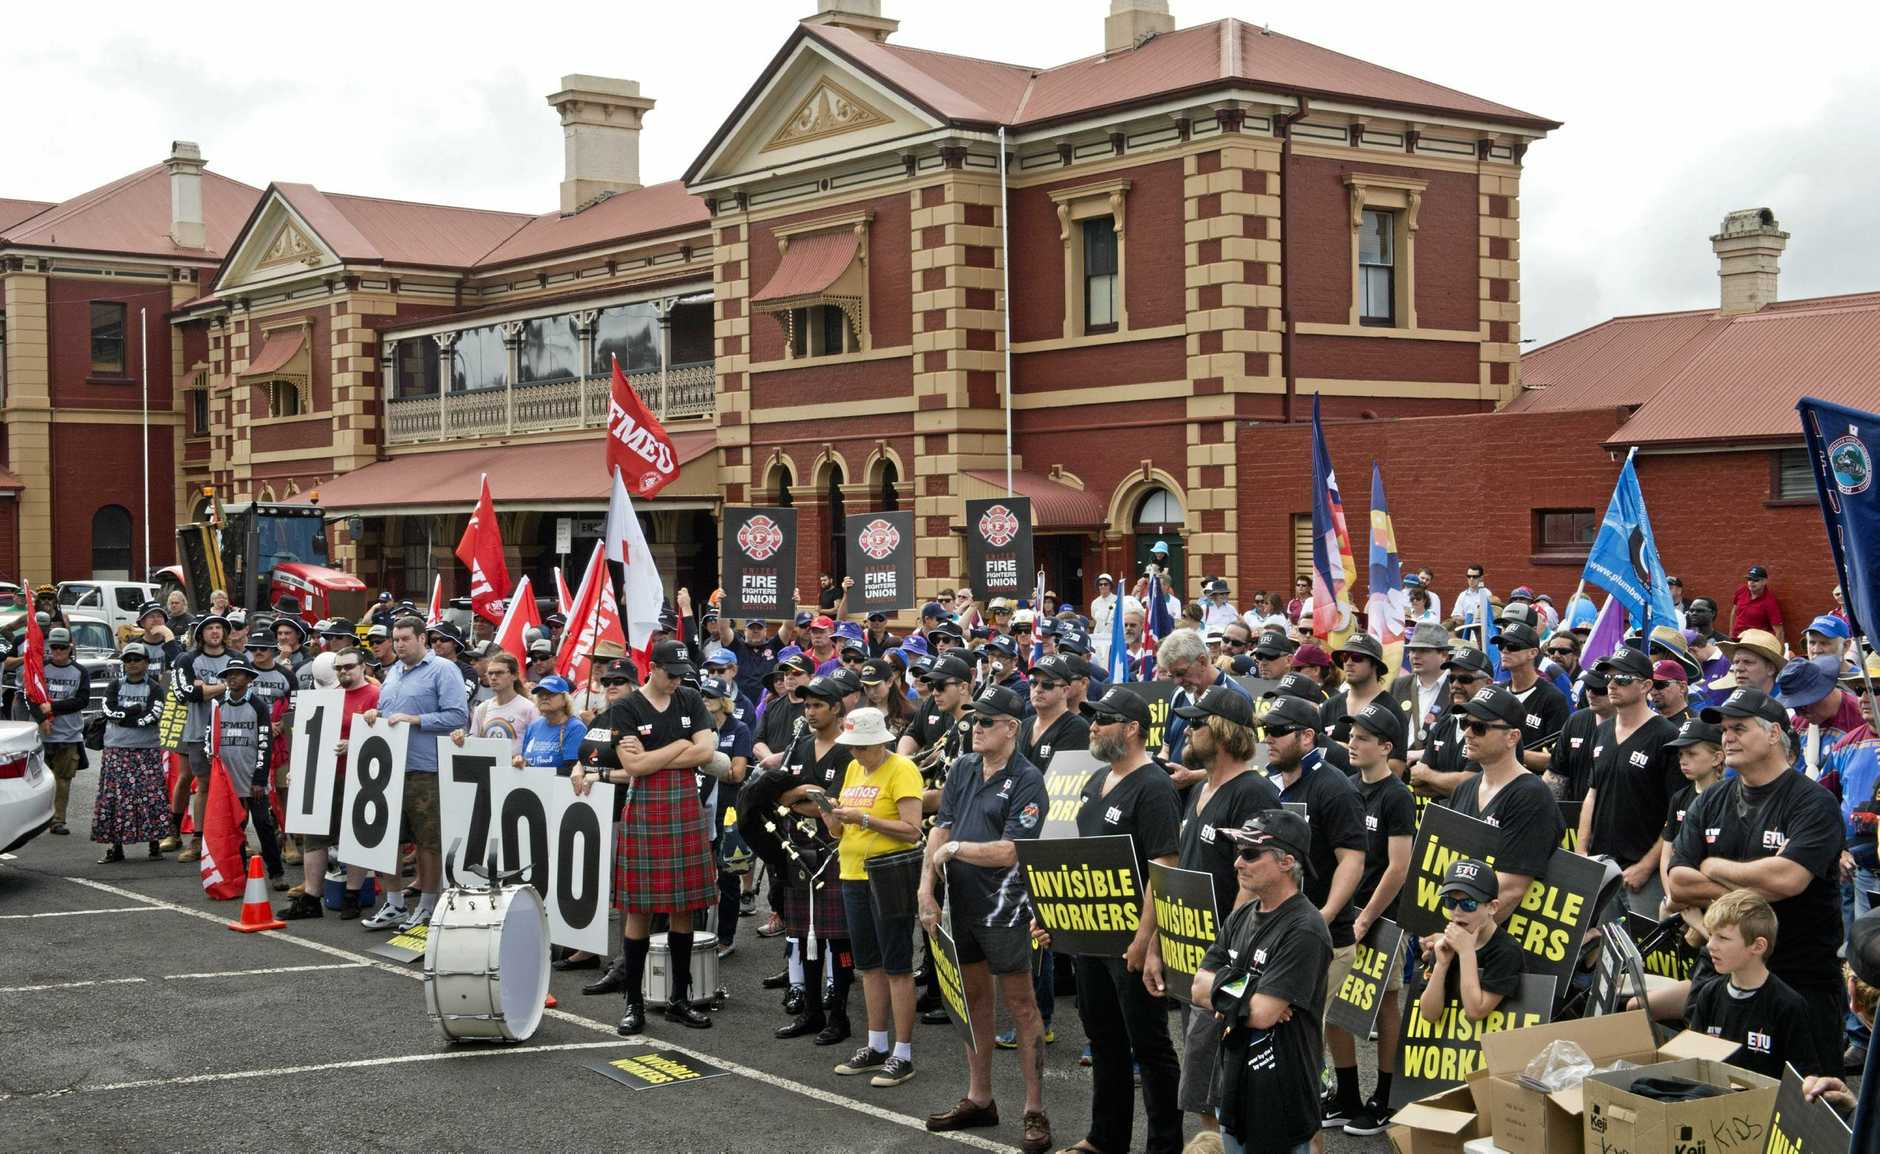 Labour Day march in Toowoomba.  Saturday 30 Apr , 2016.